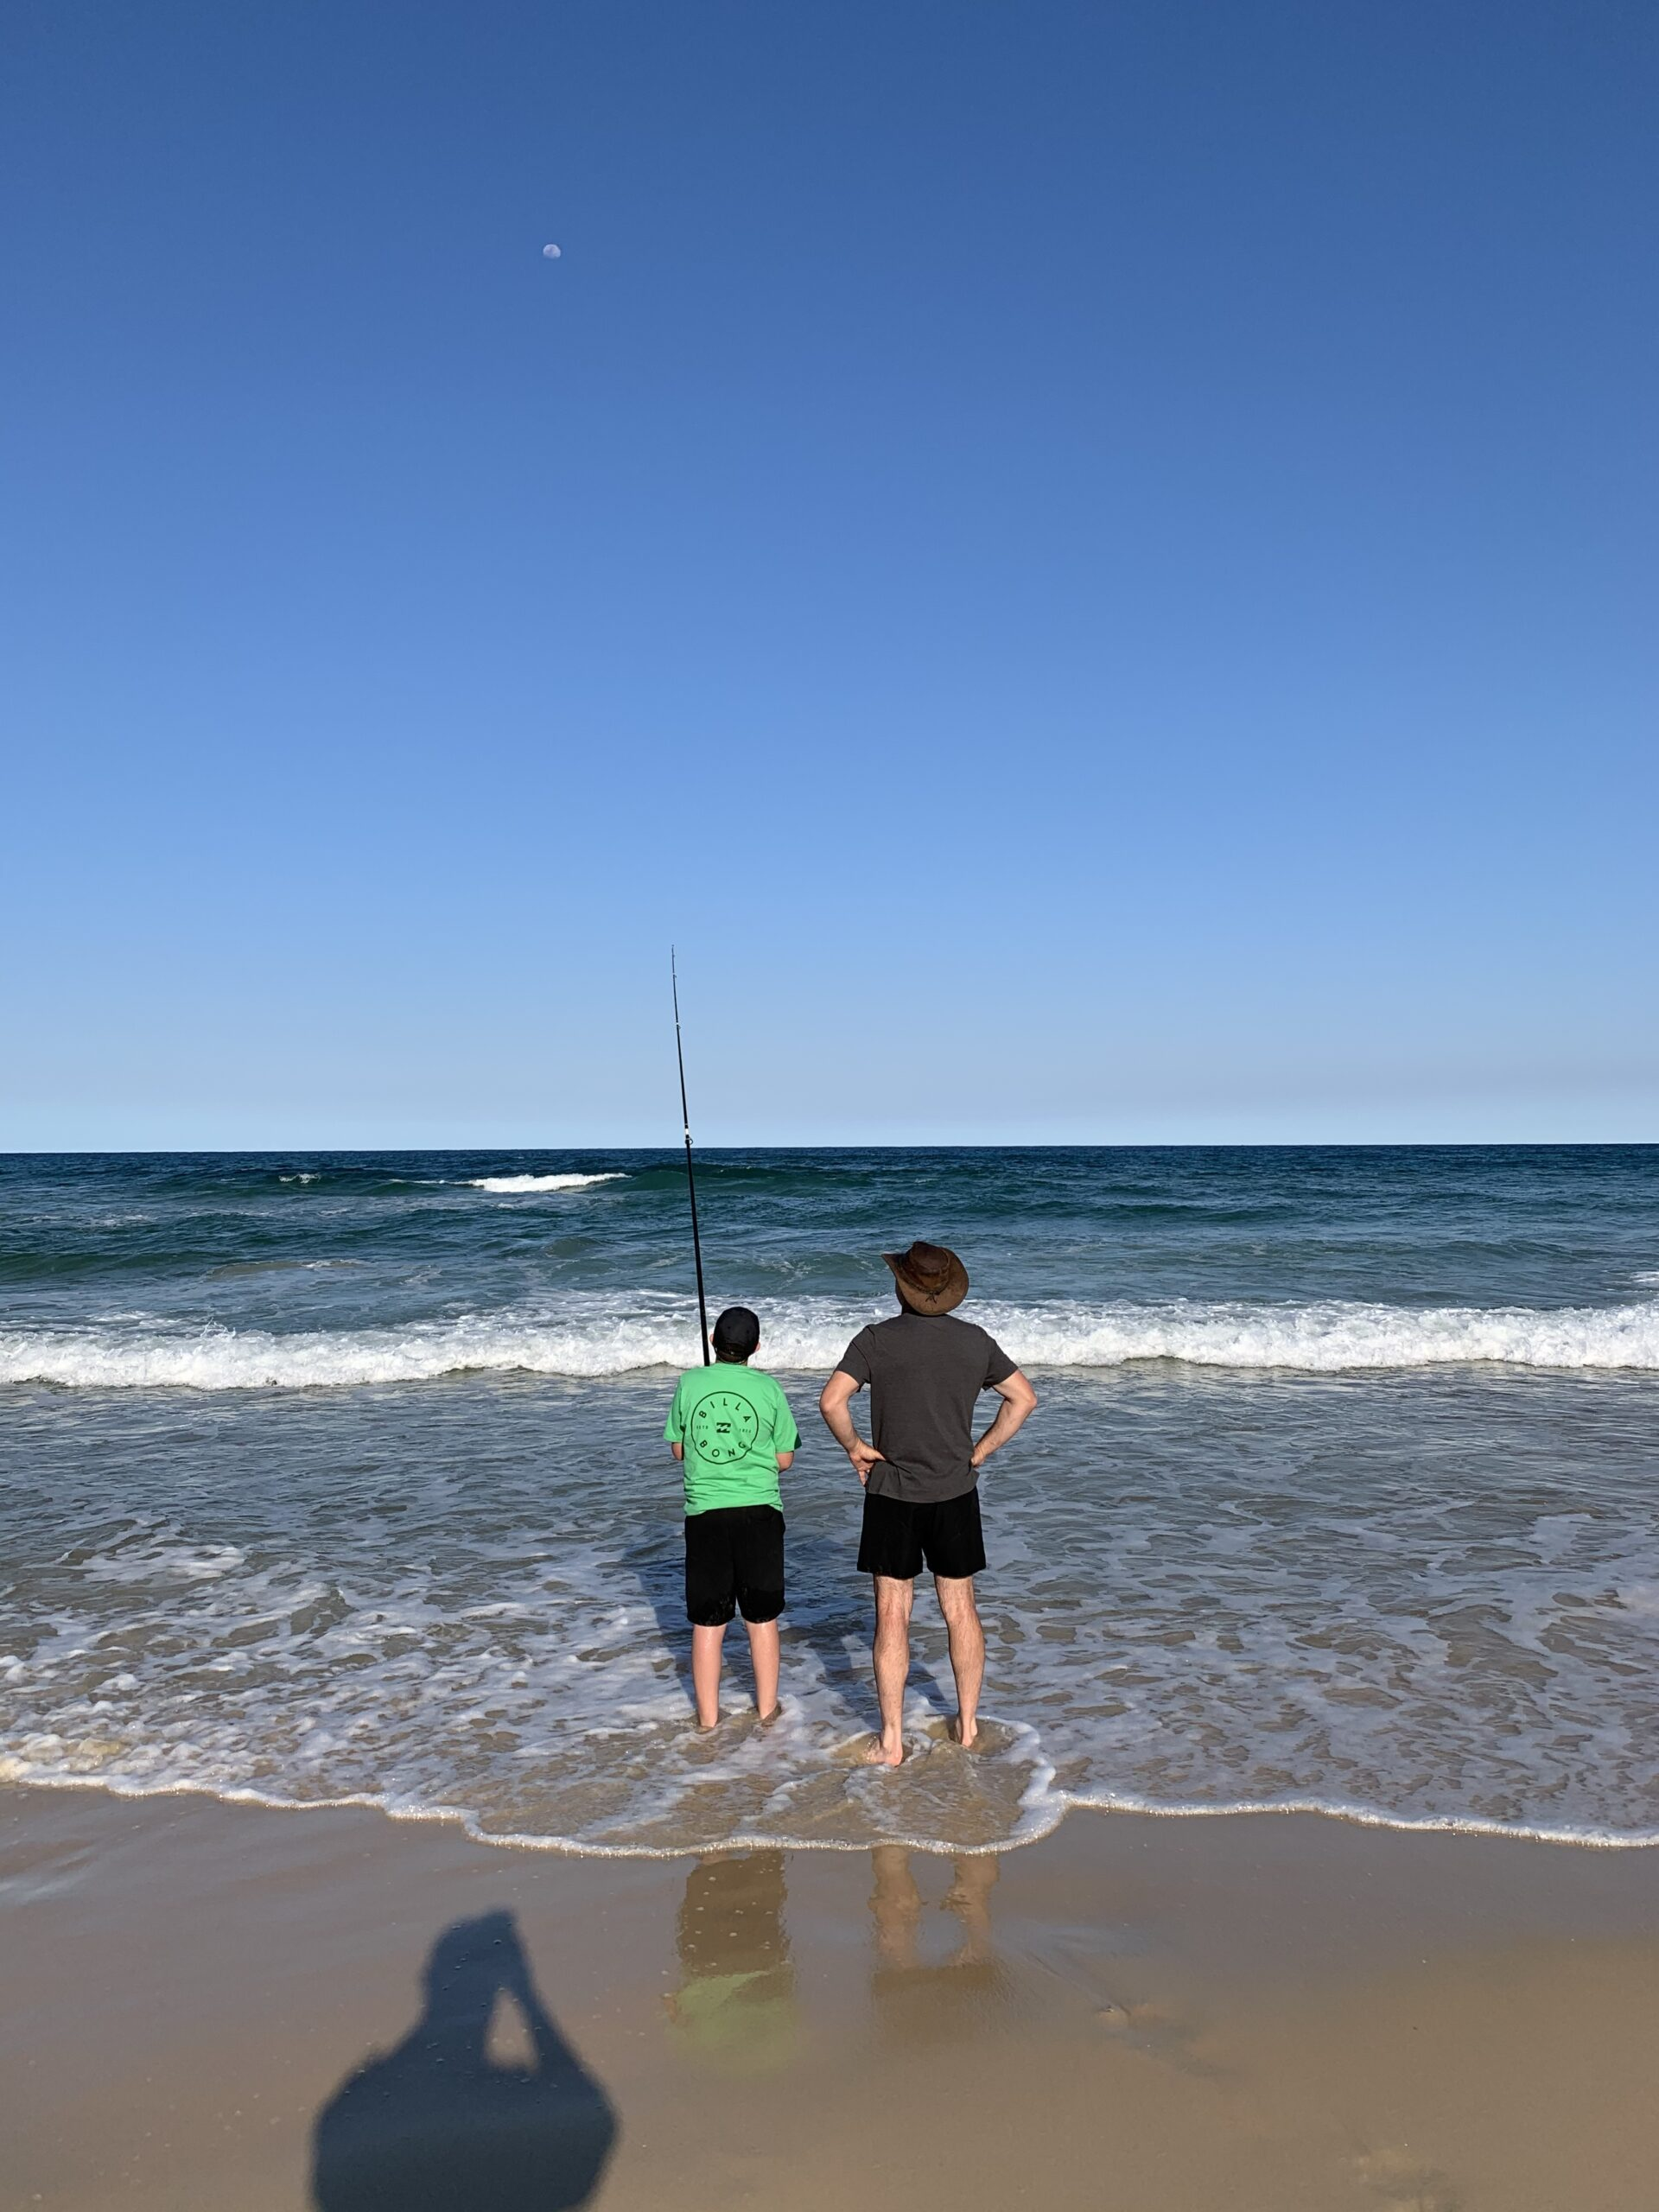 Perfect weather for kids to start surf fishing.